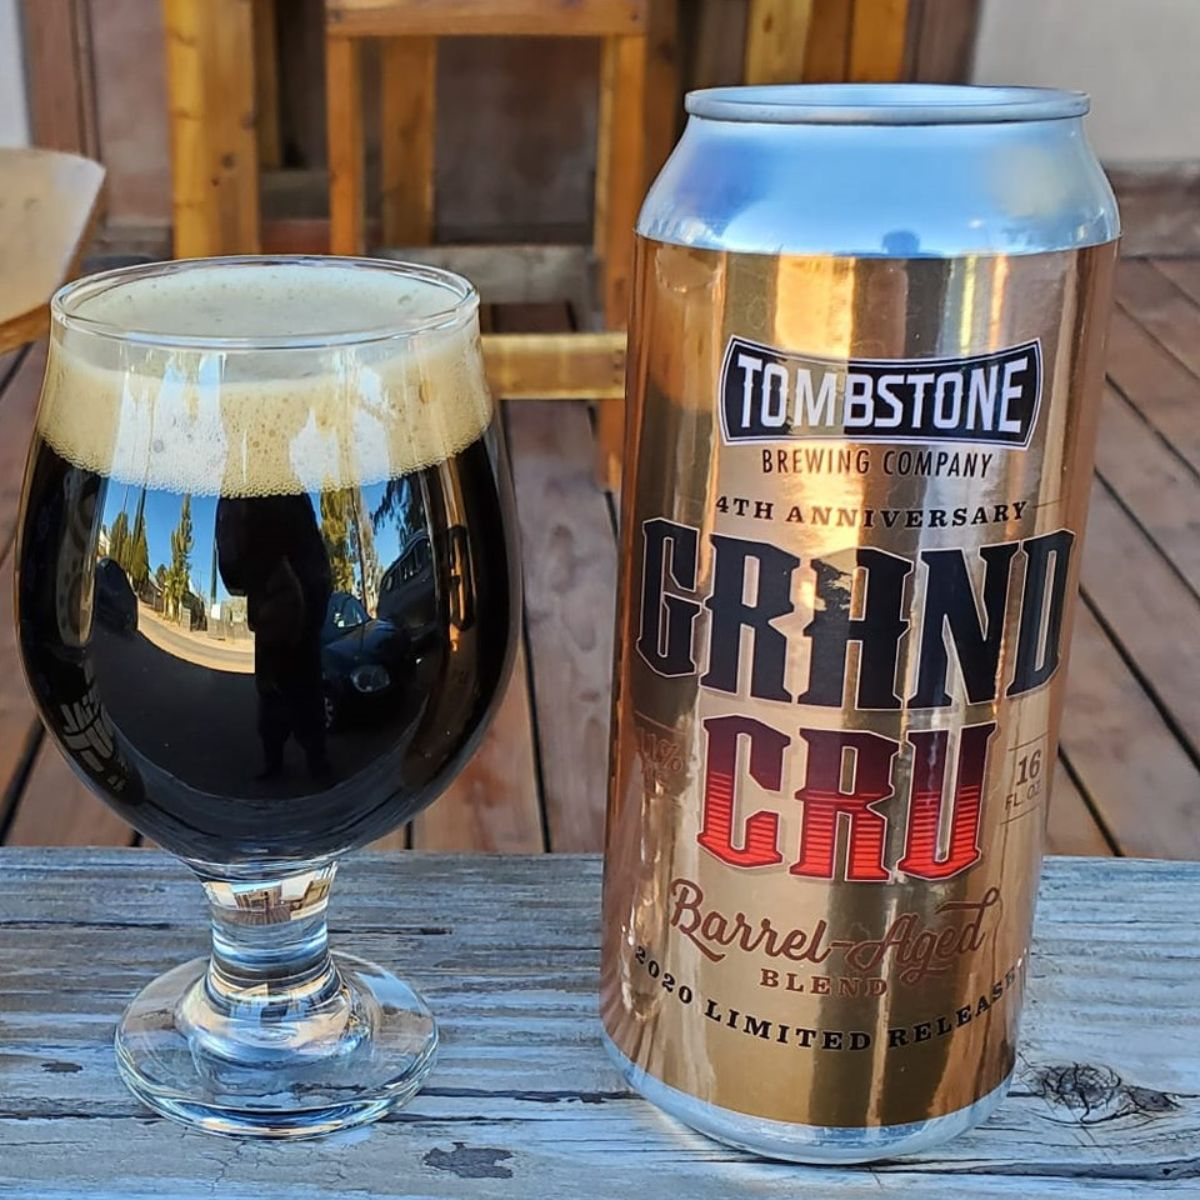 tombstone brewing's 4th anniversary grand cru beer